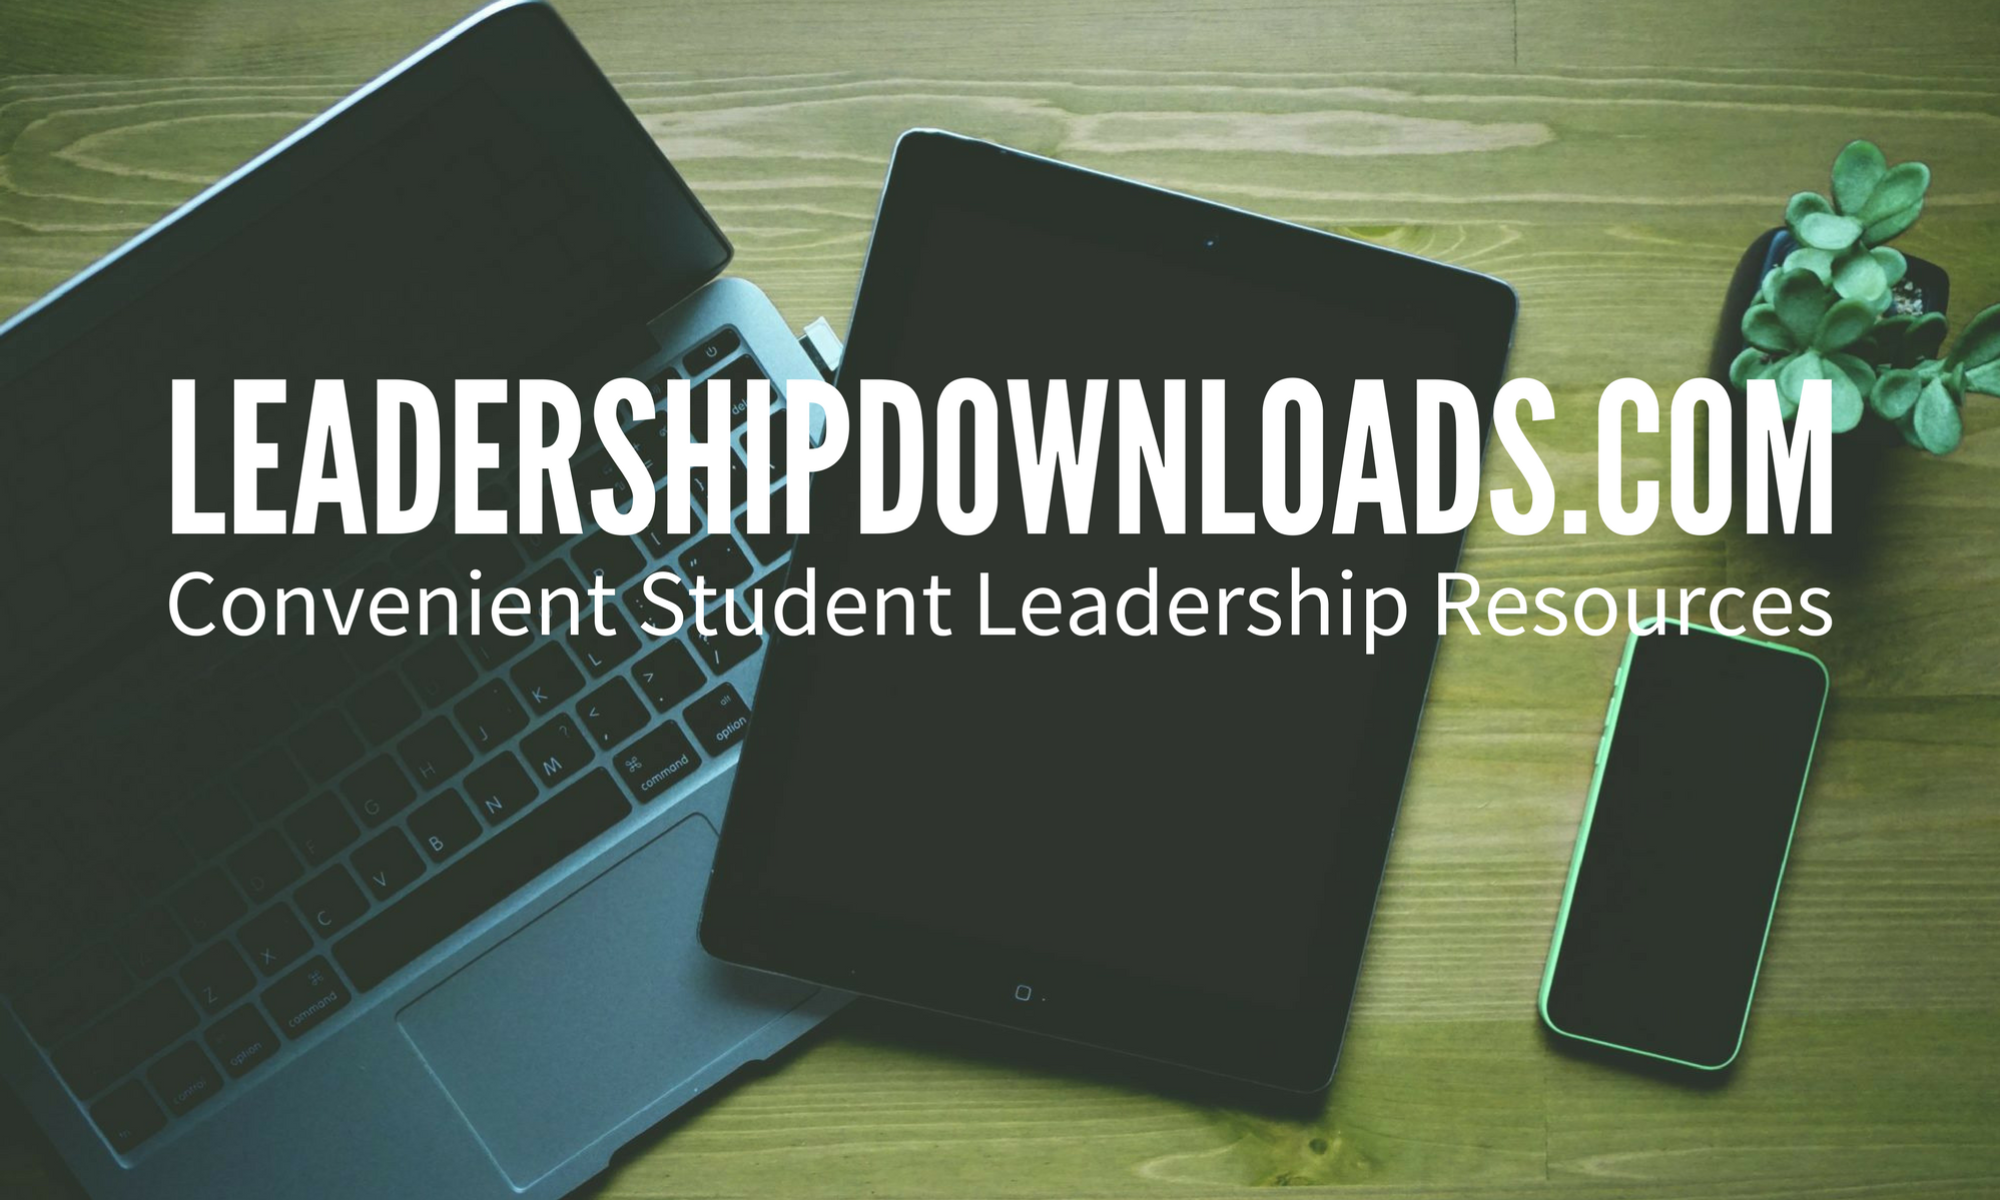 LEADERSHIPDOWNLOADS.COM